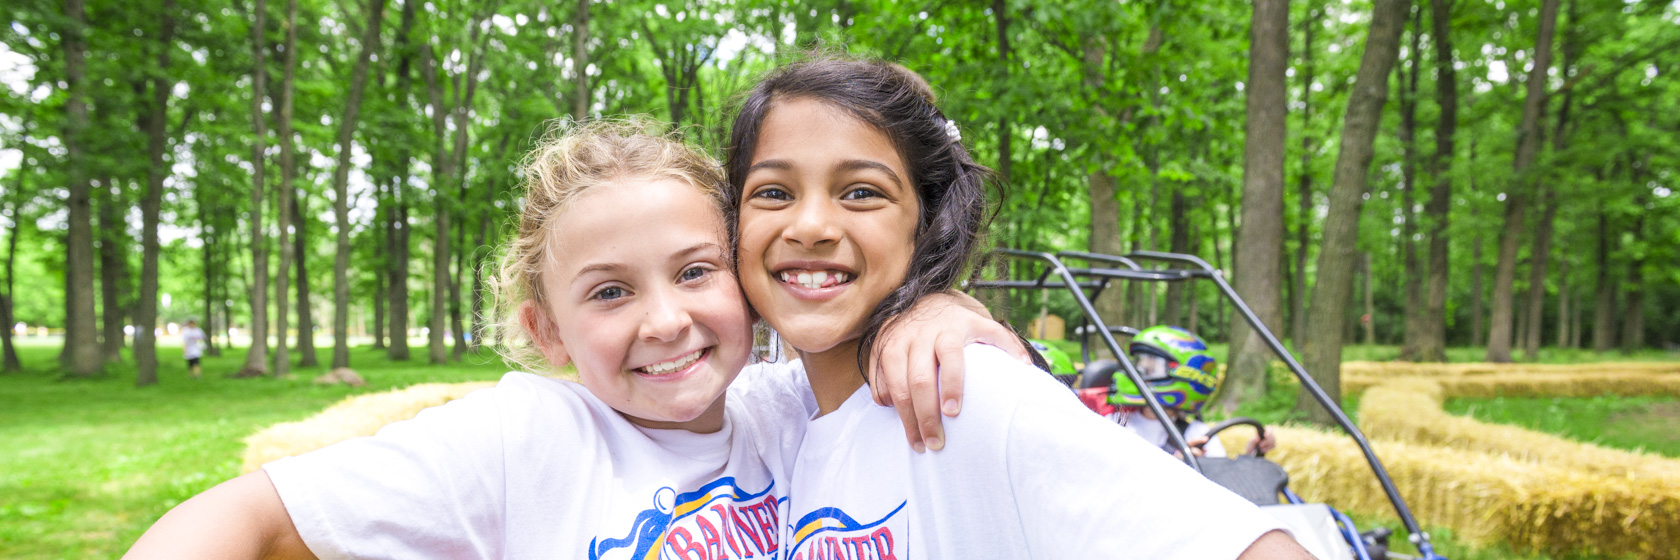 Two girl campers smiling with arms around each other on the go-kart course